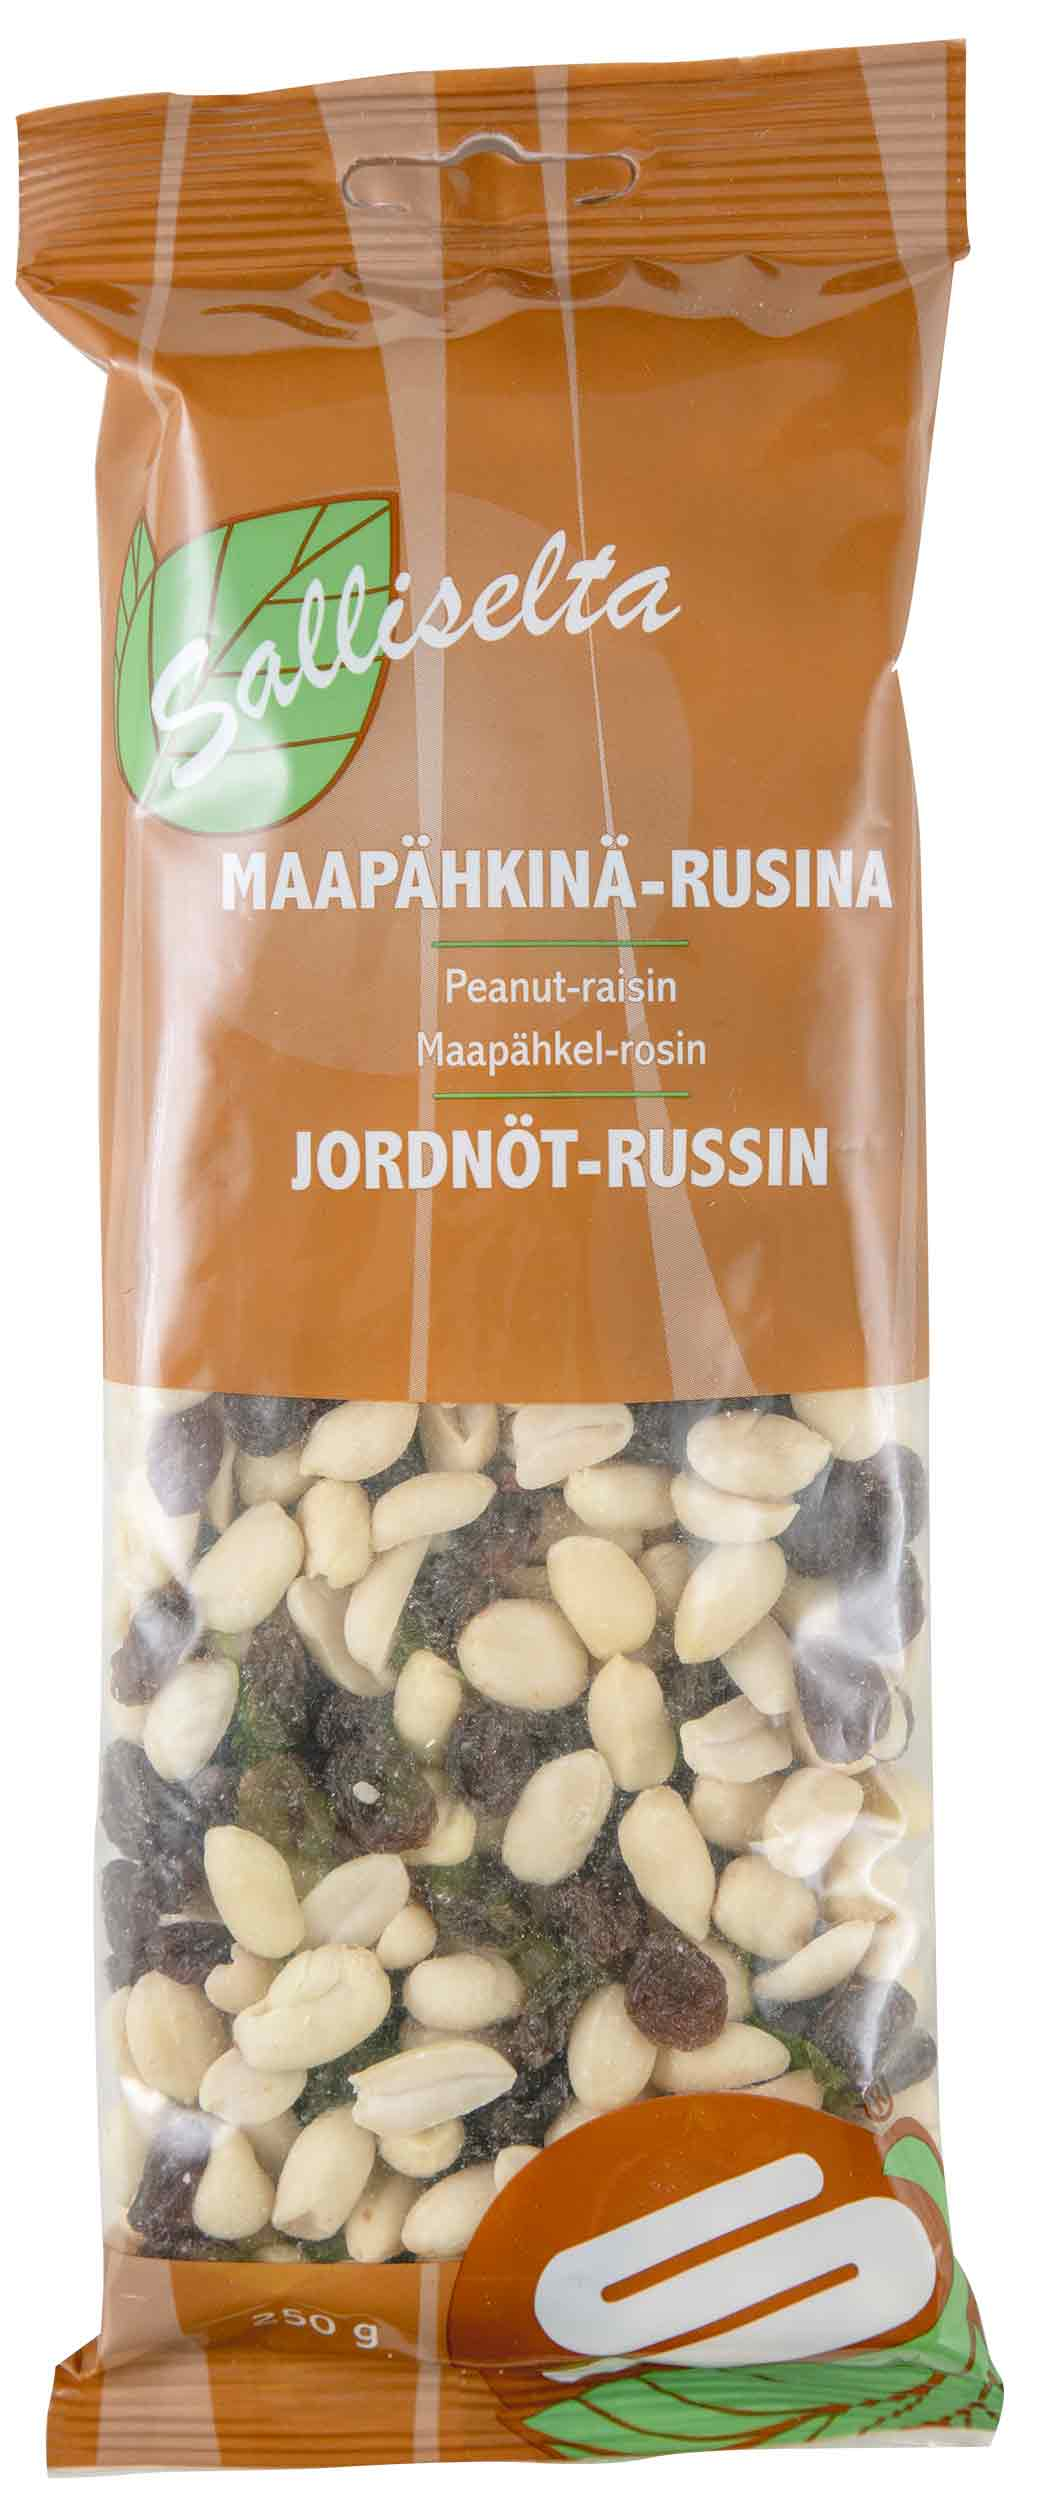 Peanut and raisin mix peeled 250g